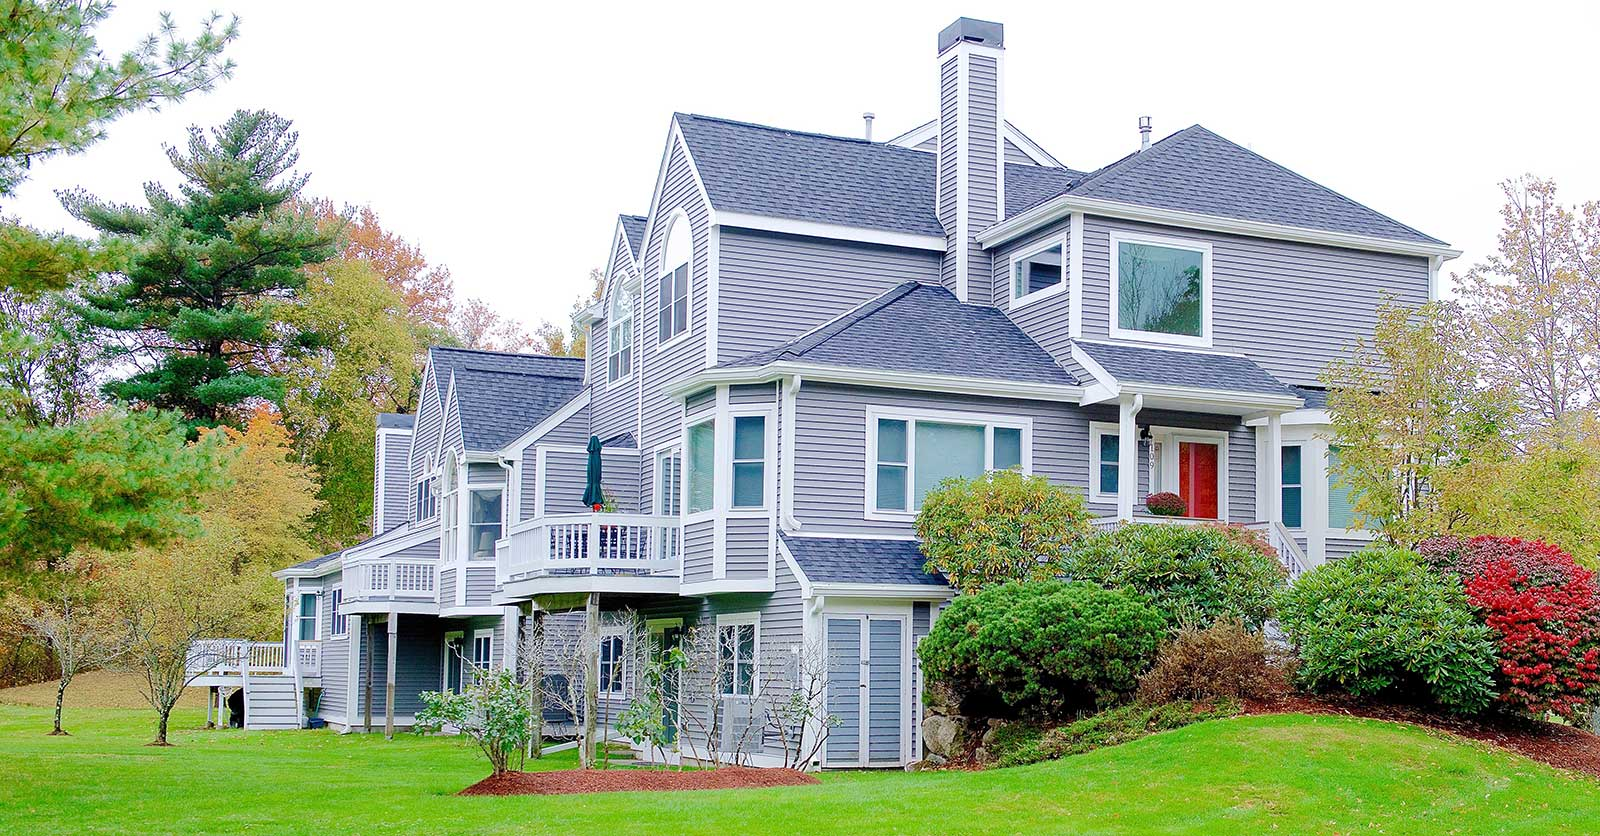 Crowninshield Property Management in Marblehead, MA